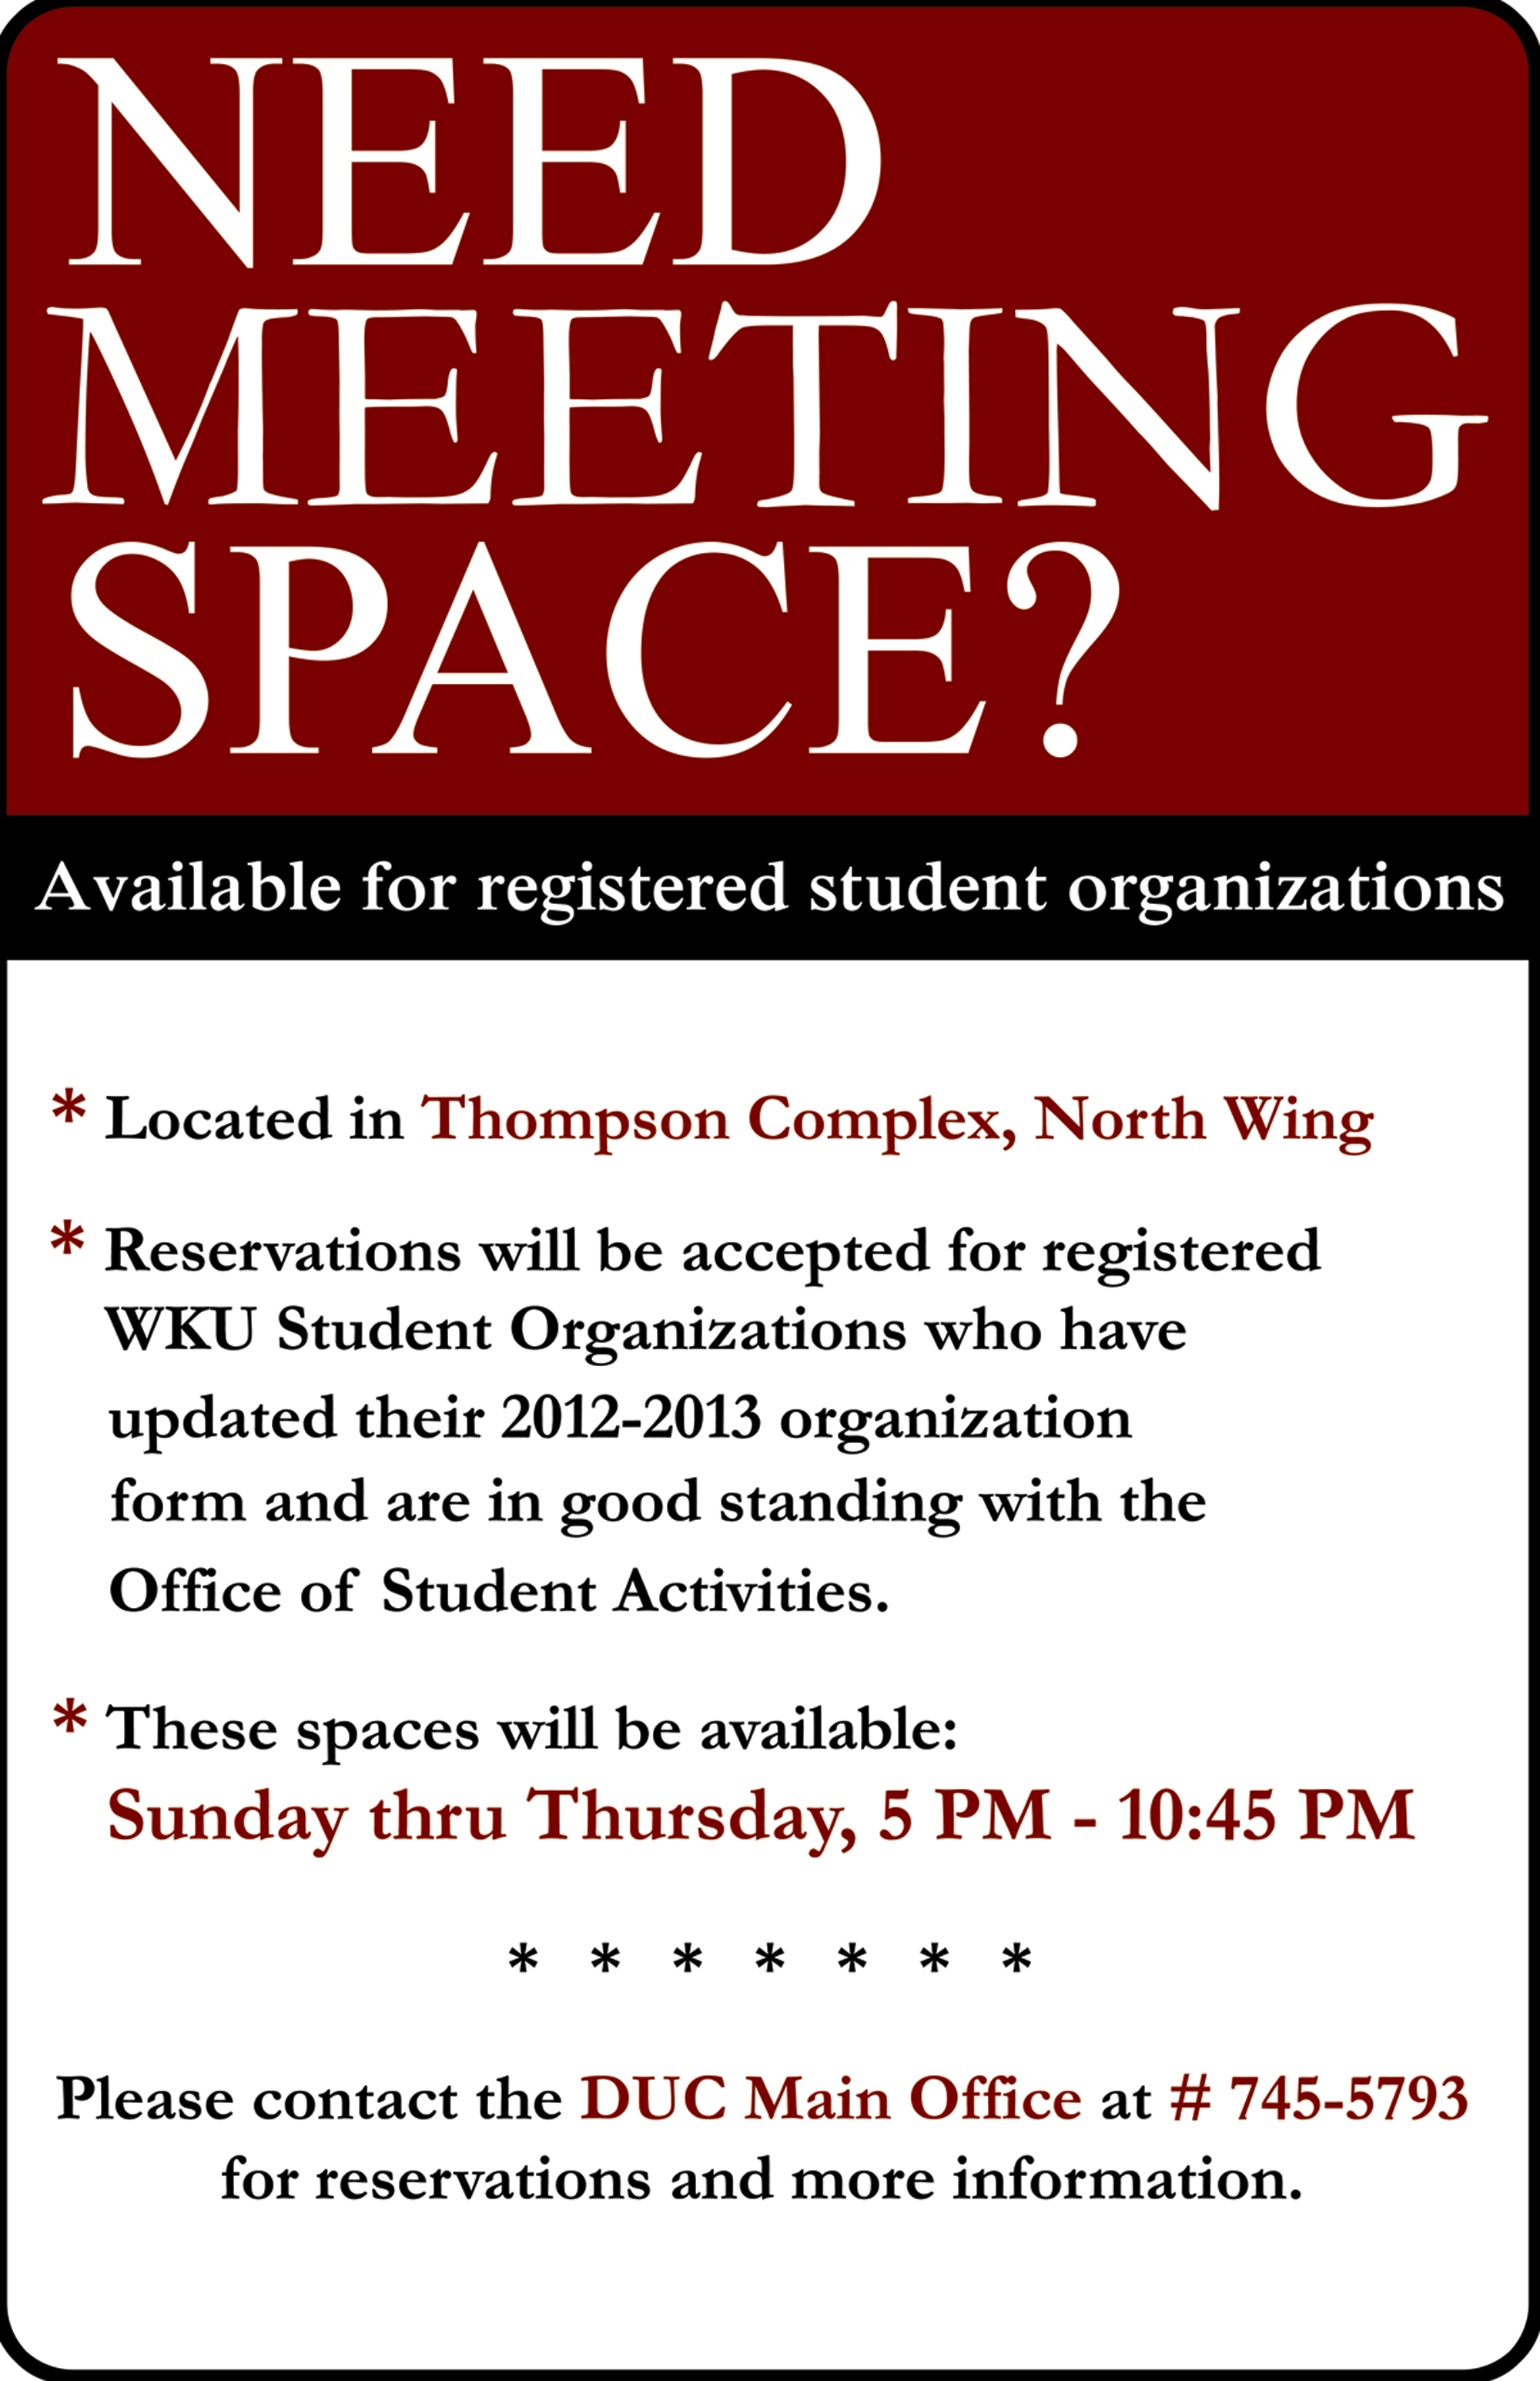 Need Meeting Space